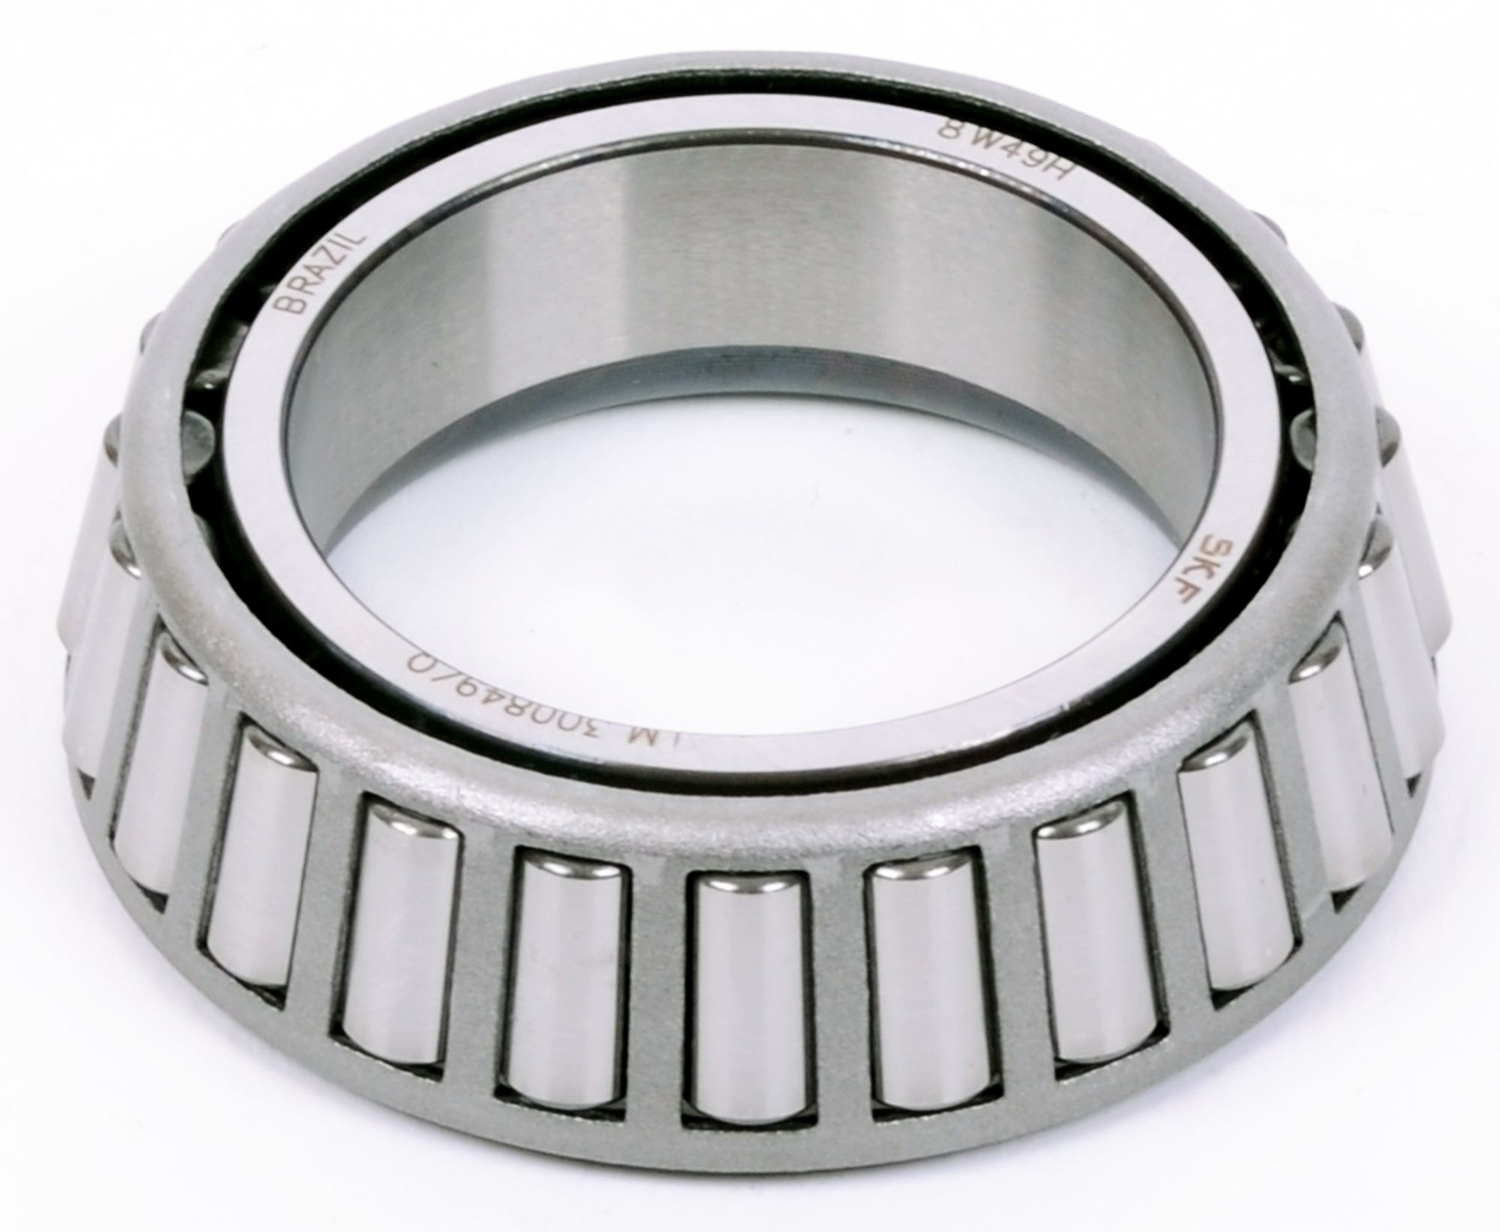 SKF (CHICAGO RAWHIDE) - Auto Trans Differential Bearing - SKF LM300849 VP